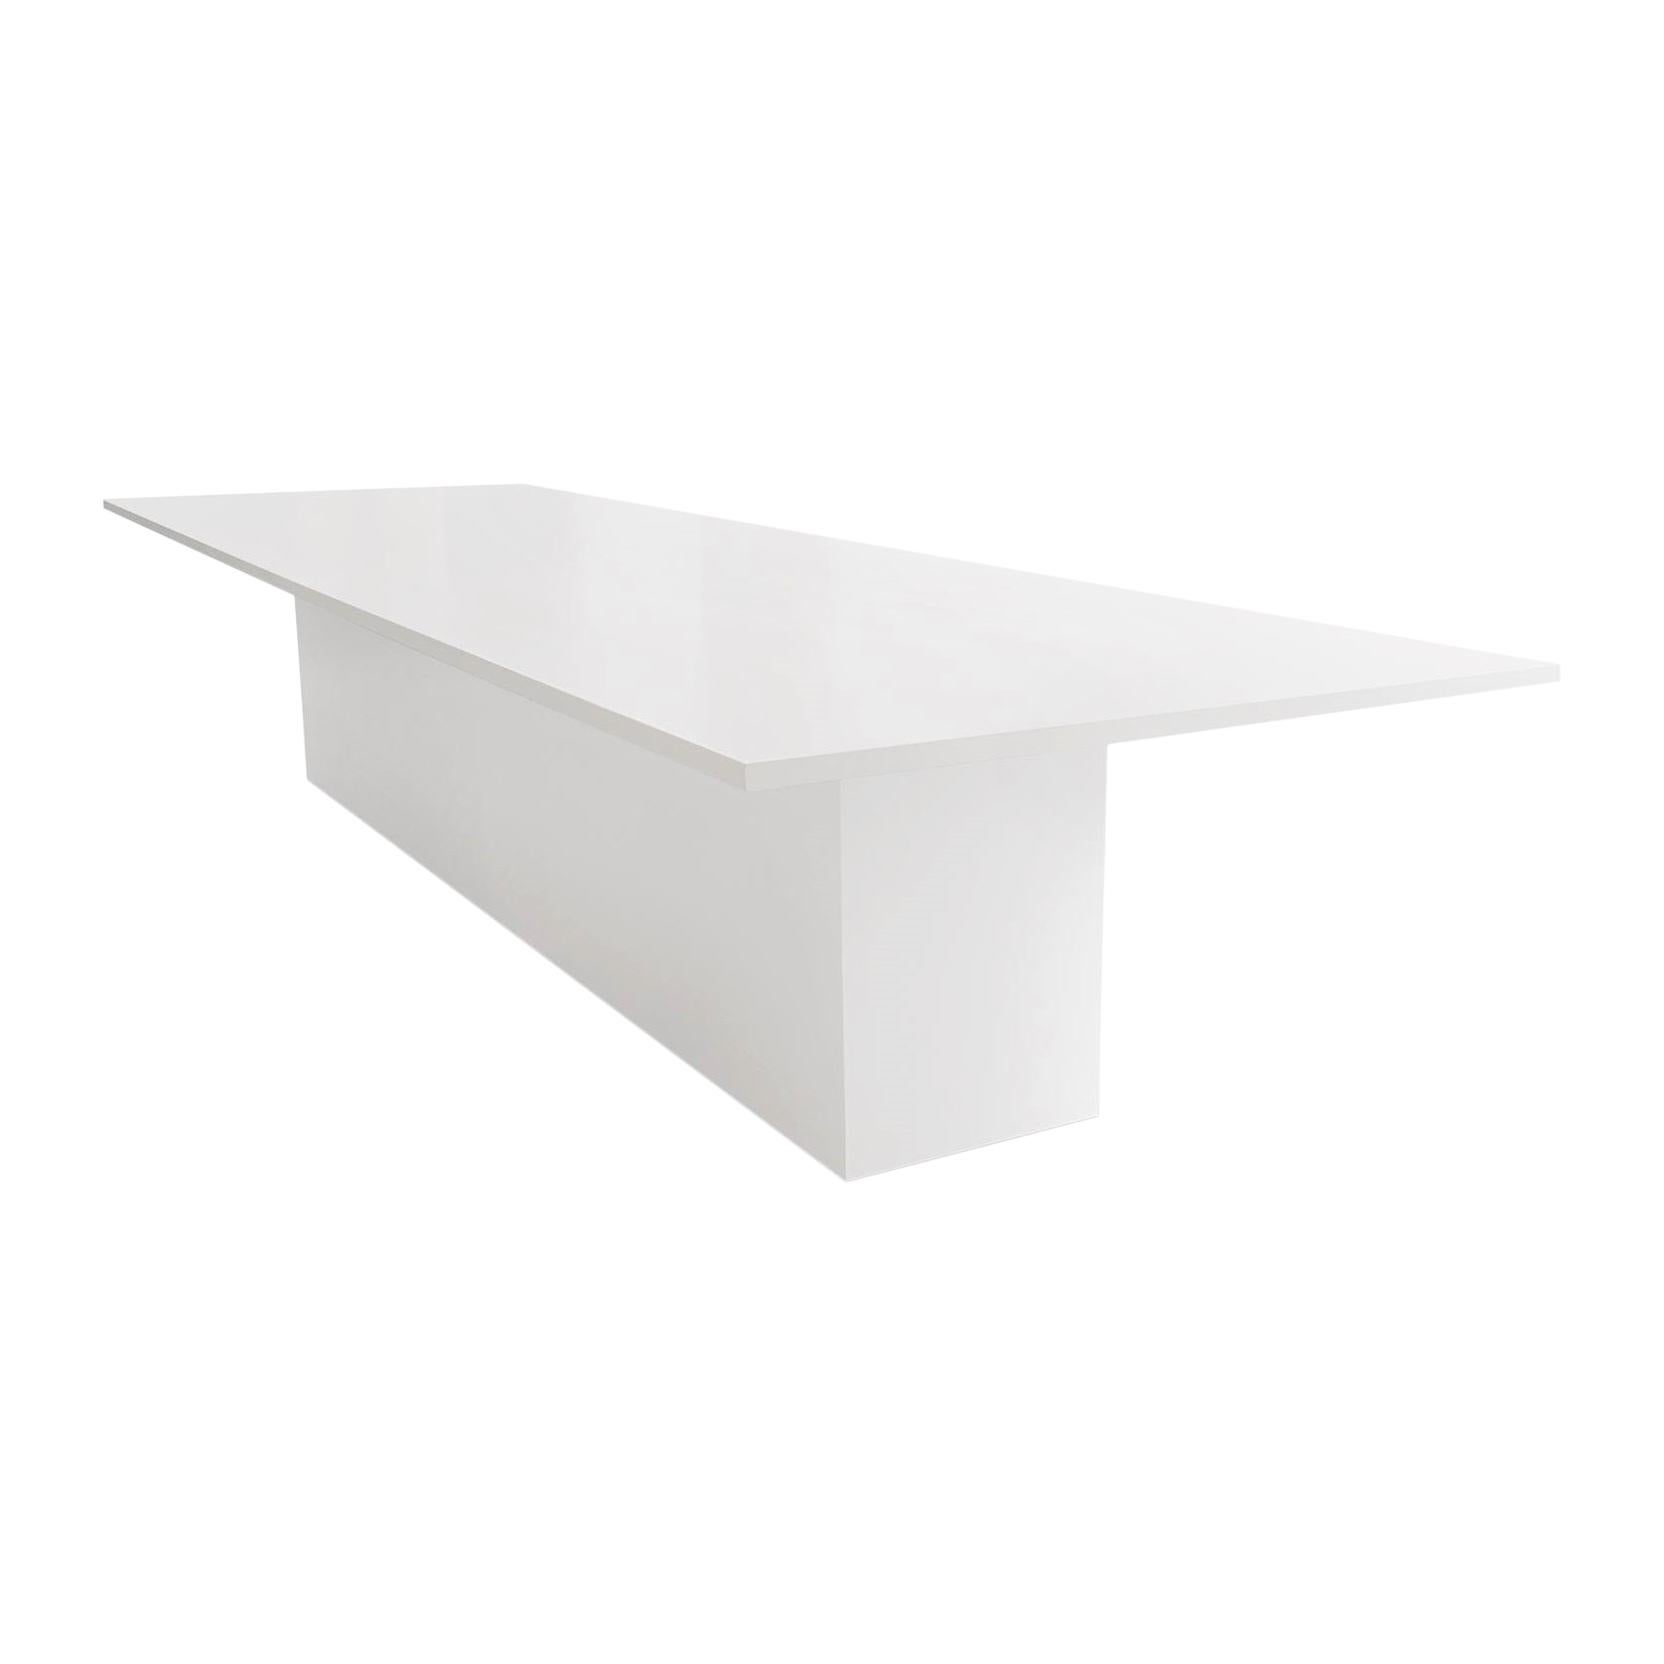 Contemporary Style Dining Table for Outdoor Use, Matte White